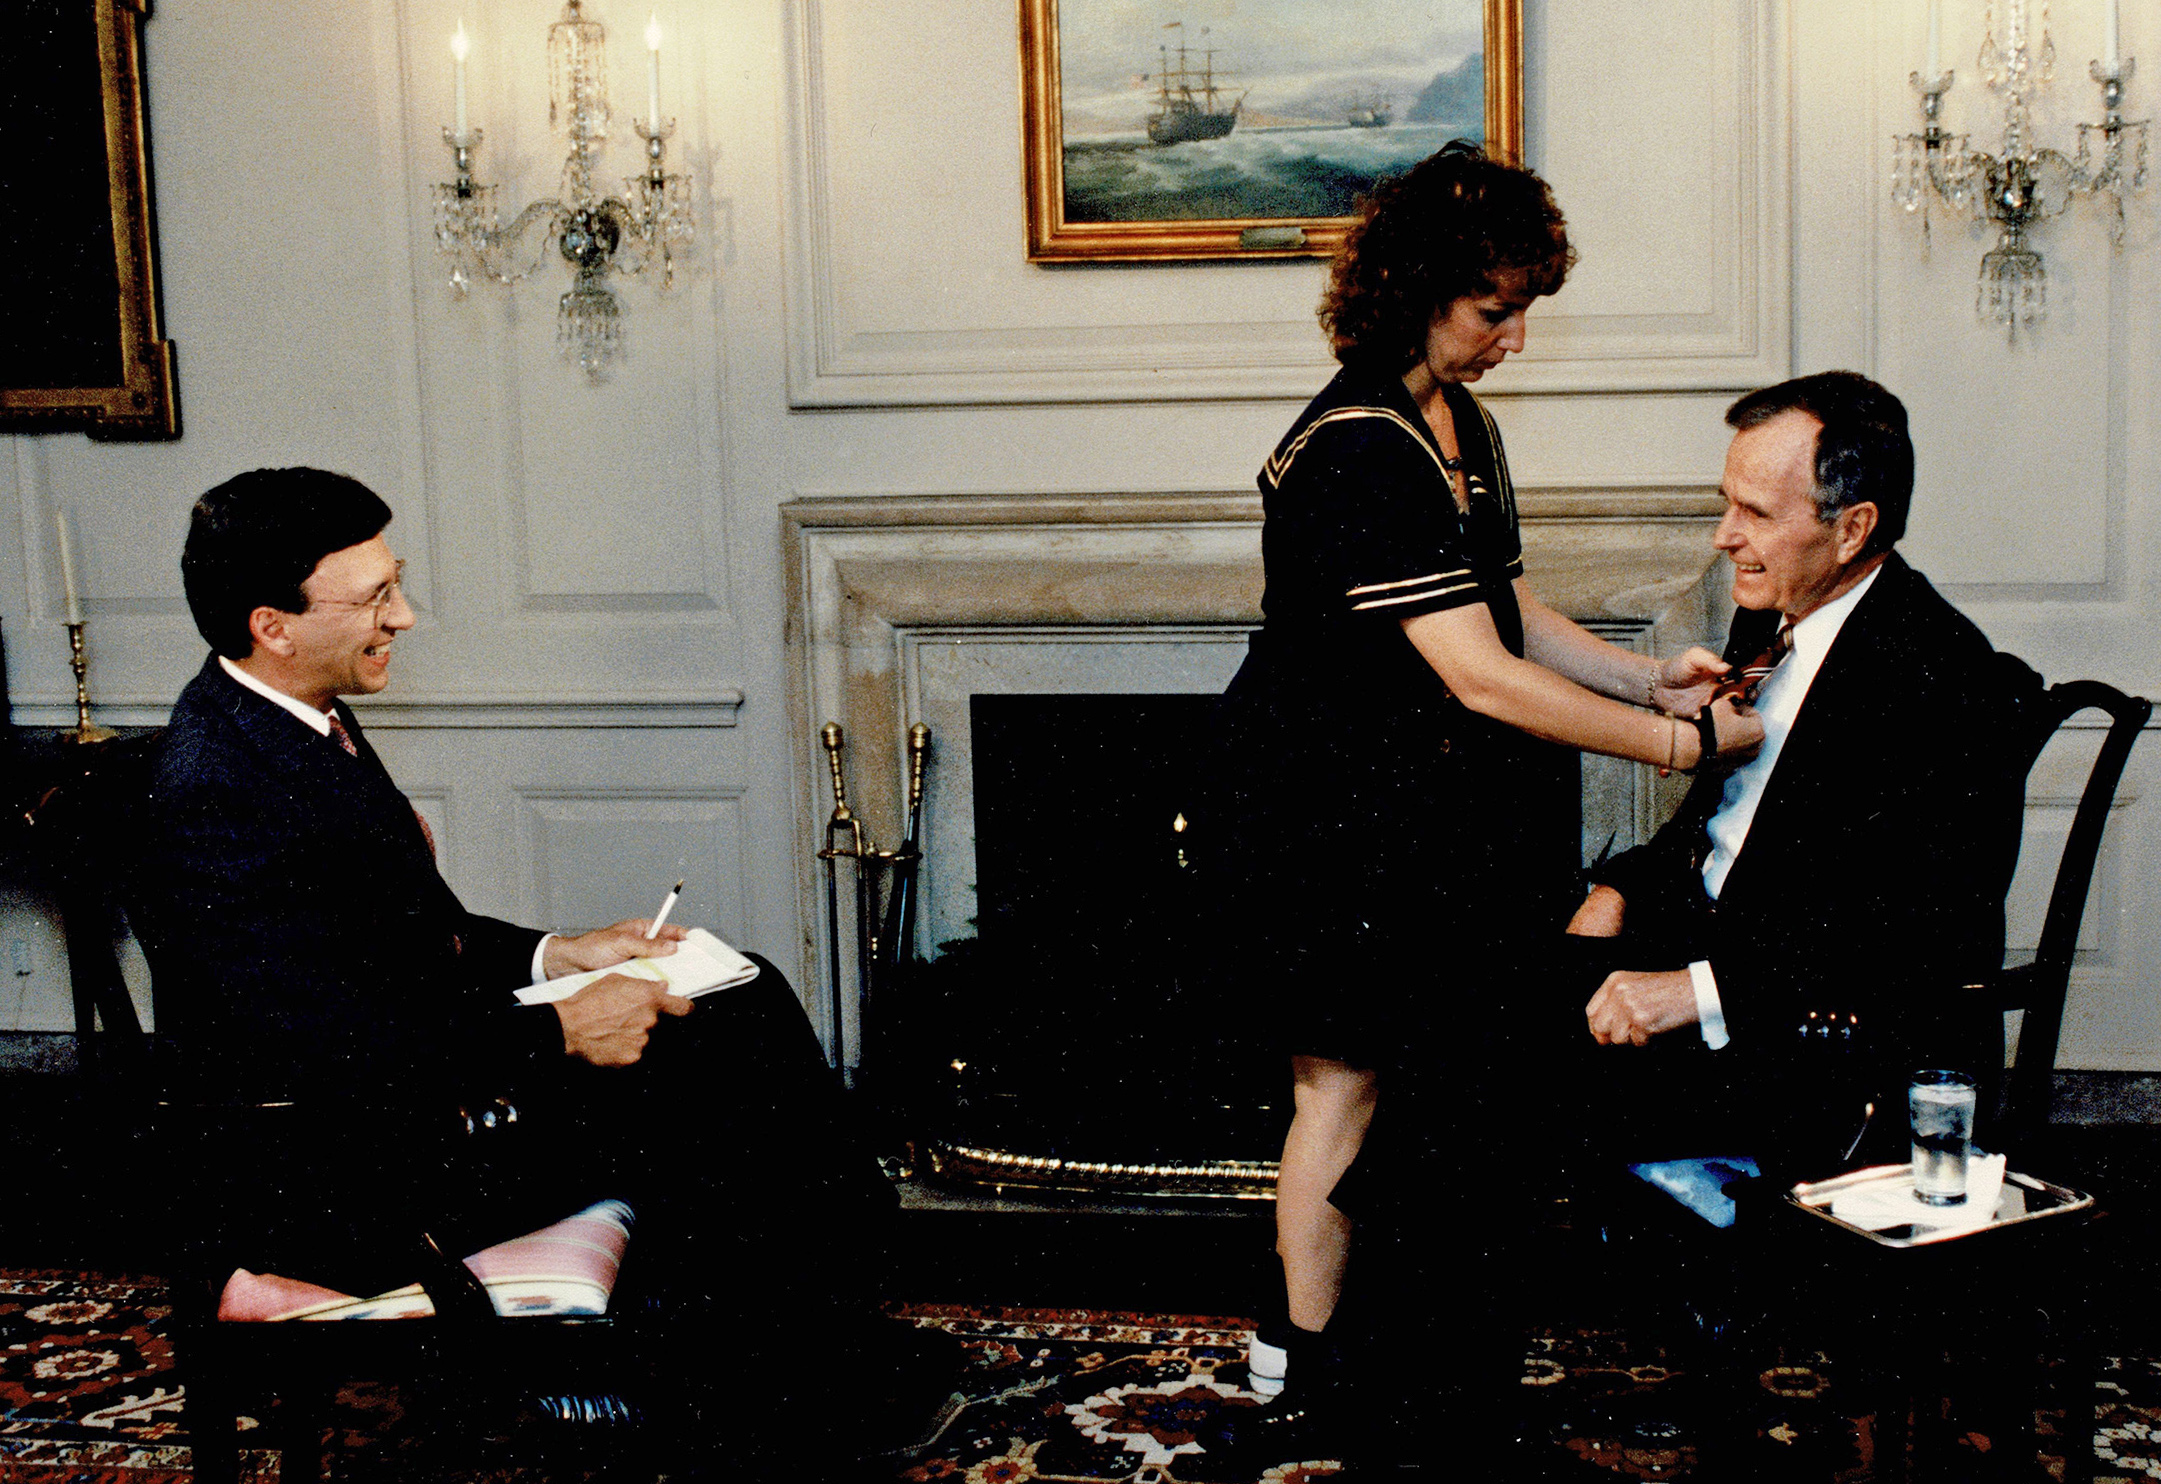 Sesno and then-President George H.W. Bush get set up for an interview at the White House for CNN.